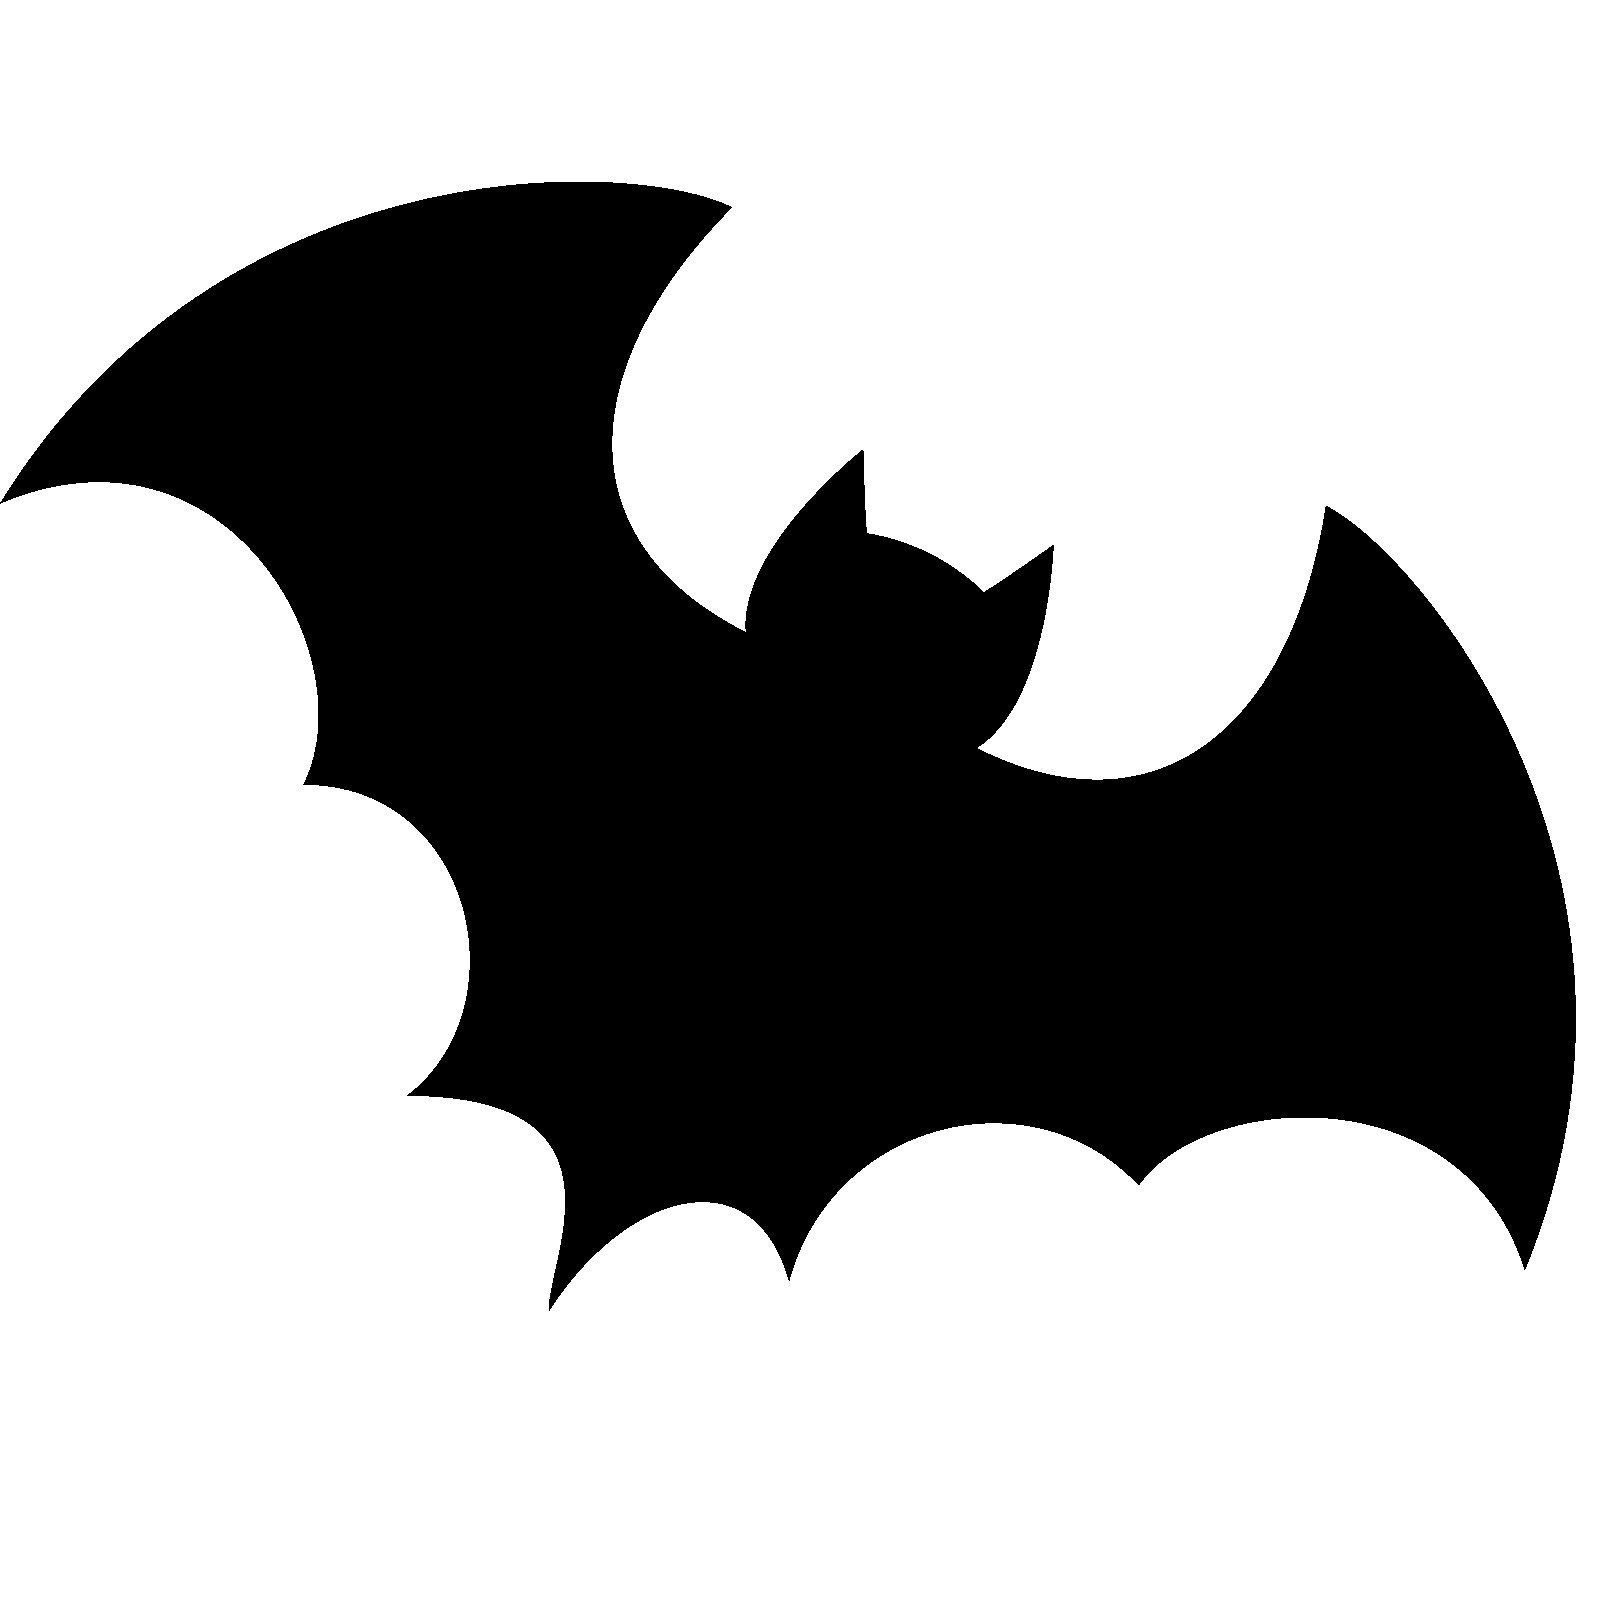 1600x1600 Free Simple Halloween Bat Vector By Memimouse D9e2sig 18